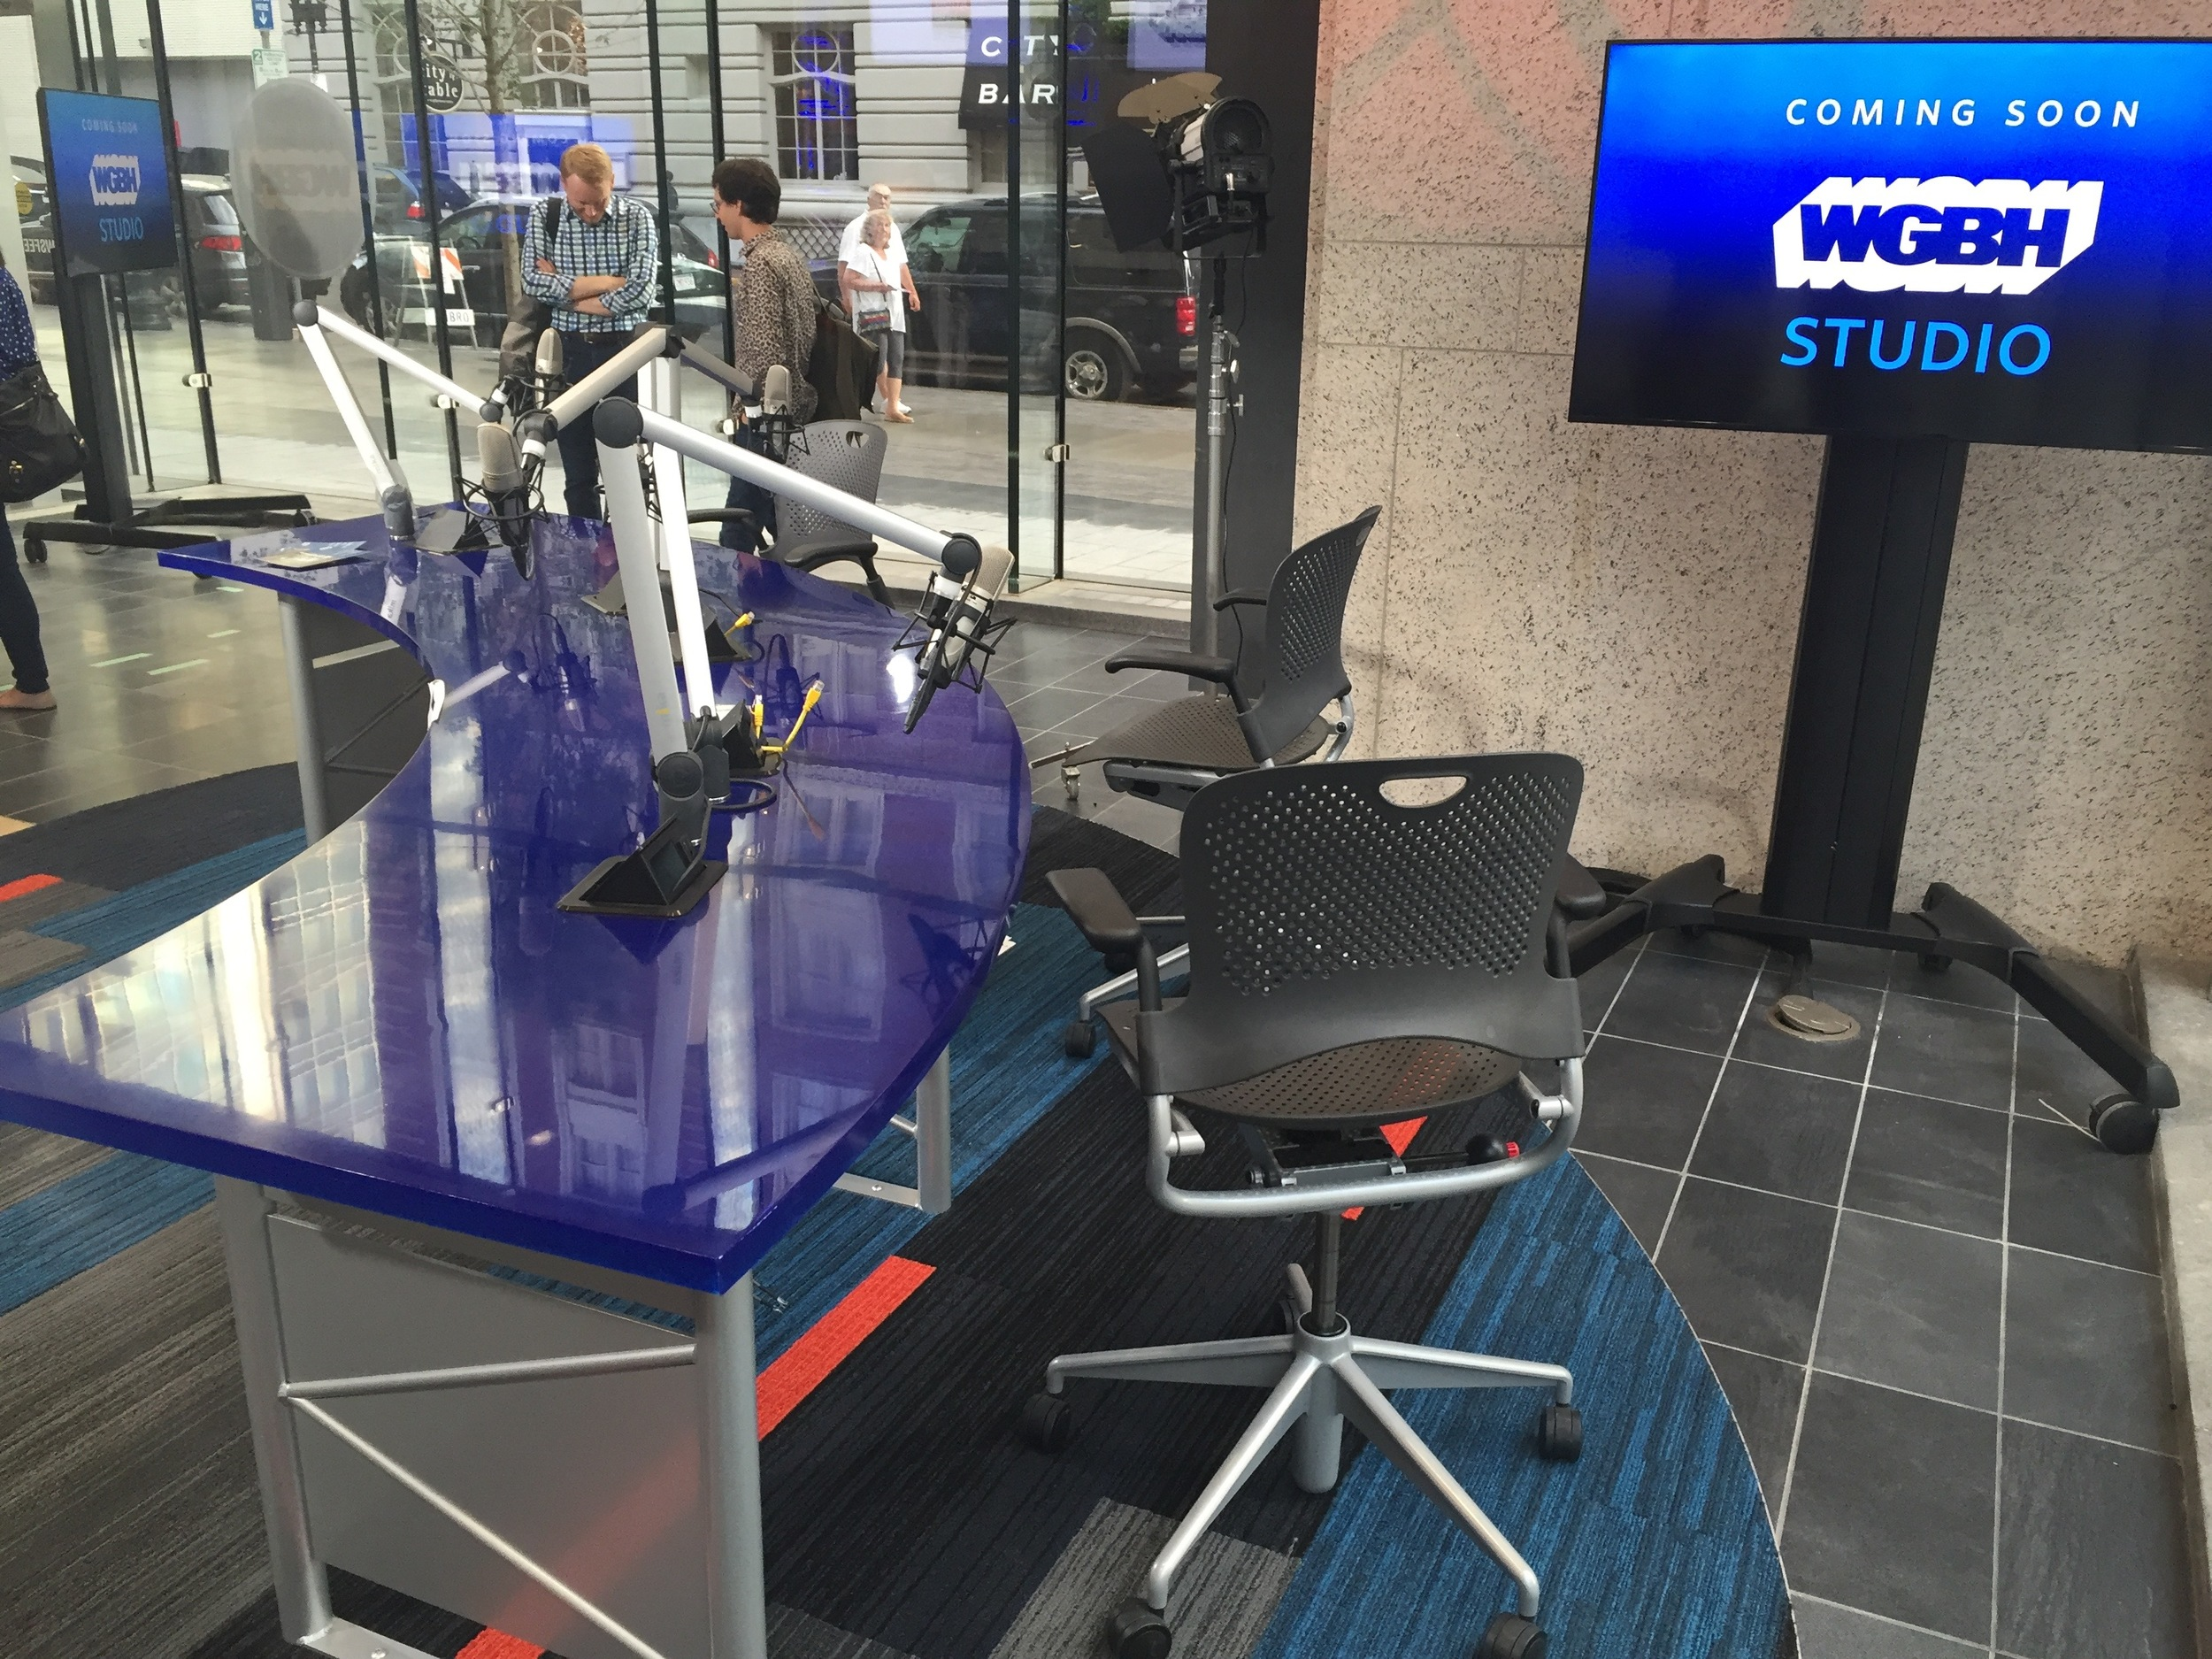 The new WGBH satellite studio at the Boston Public Library's NewsFeed Cafe.